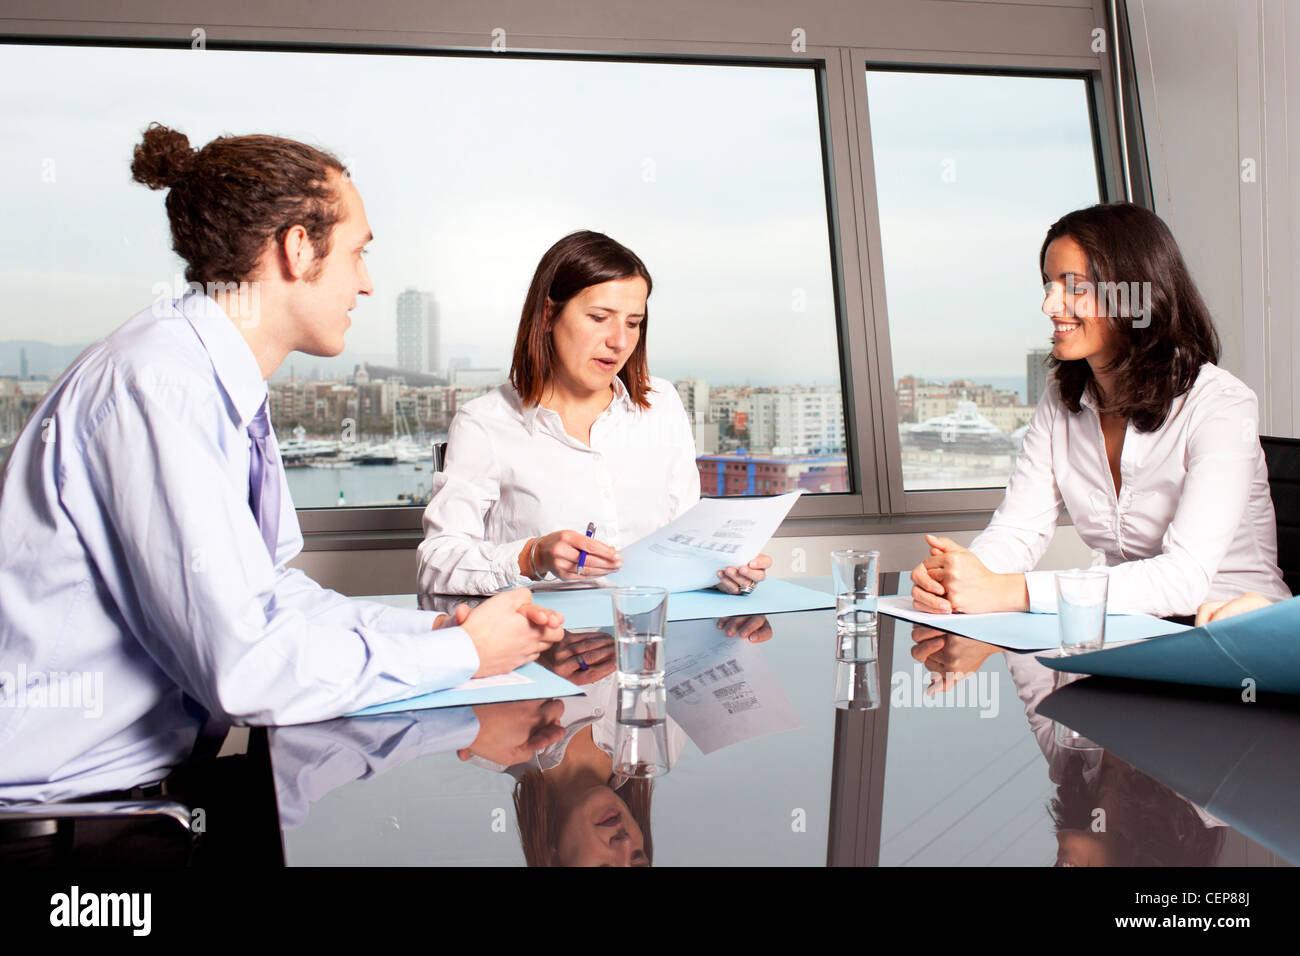 businesspeople interacting at business meeting - Stock Image